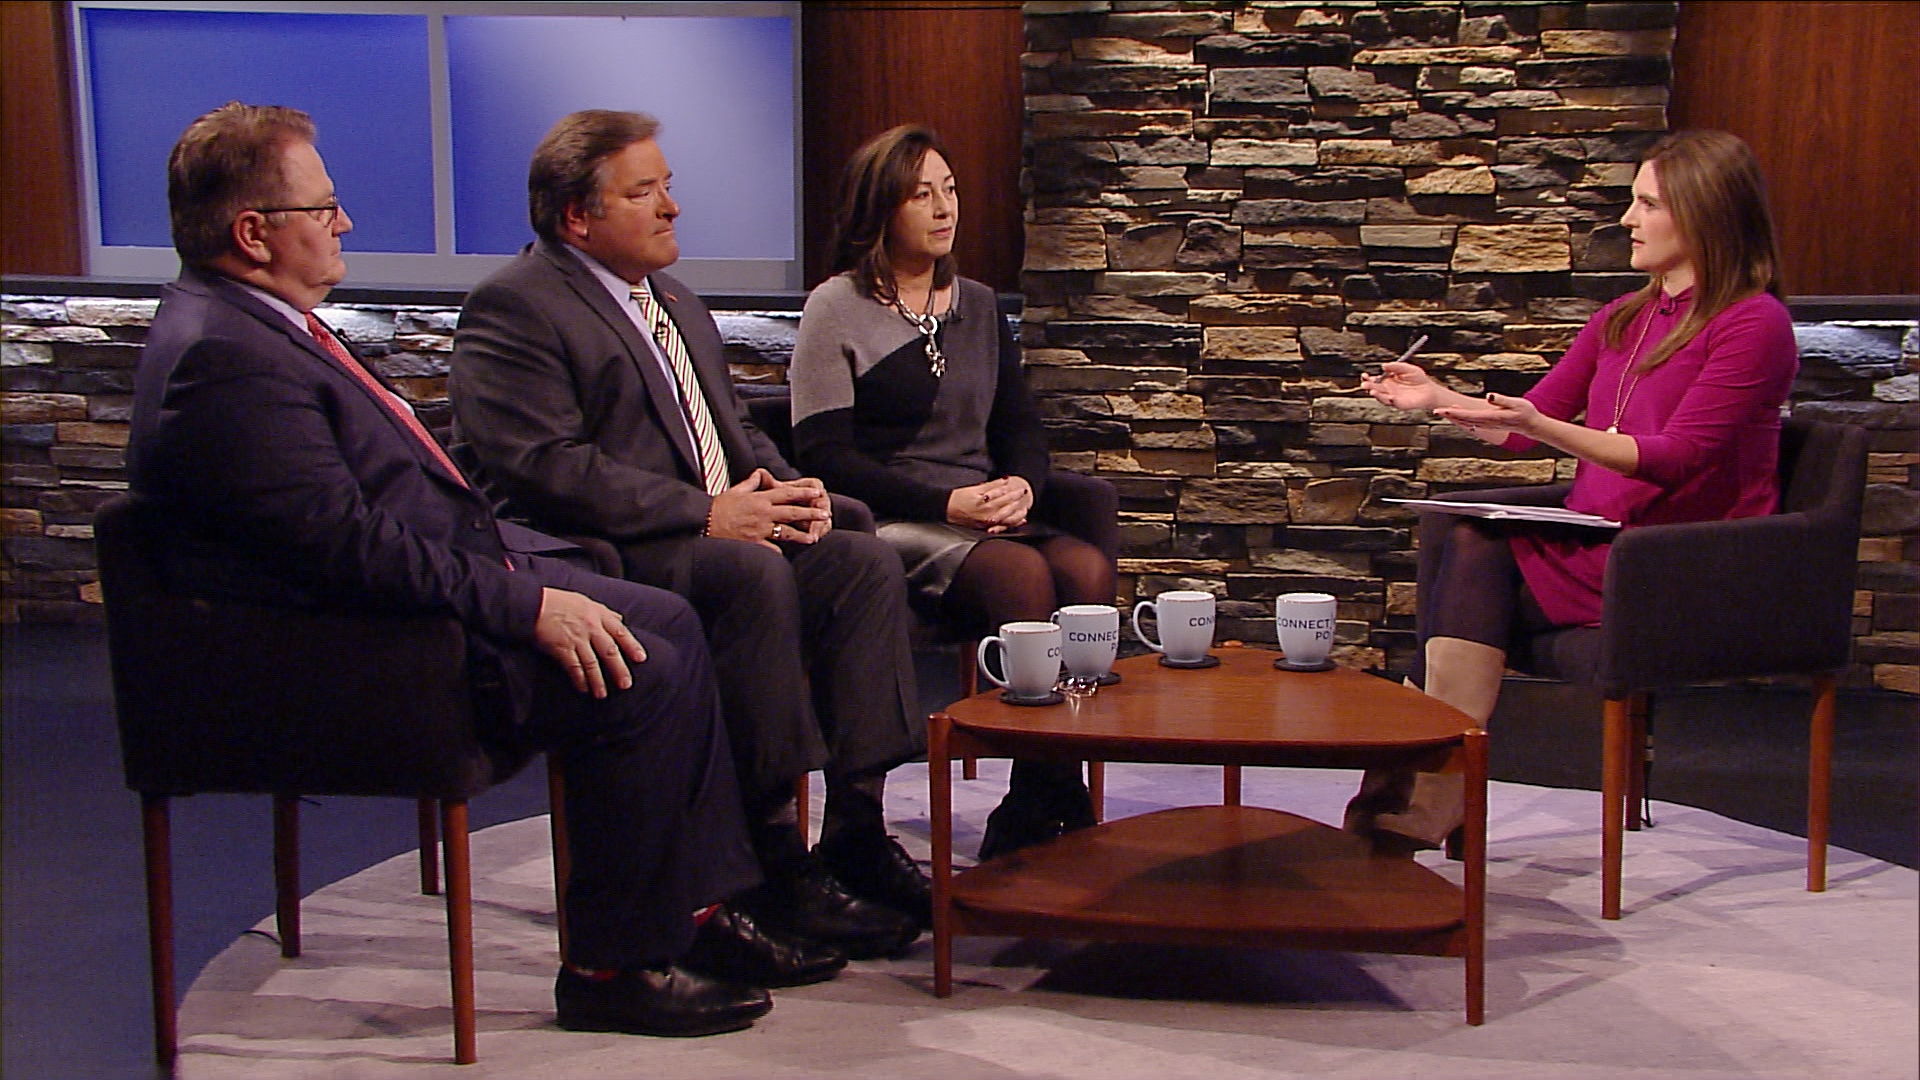 Anthony Cignoli, Jim Polito, & Suzanne Murphy discuss the week's political hot topics, including East-West rail, potential ACA changes, and more.